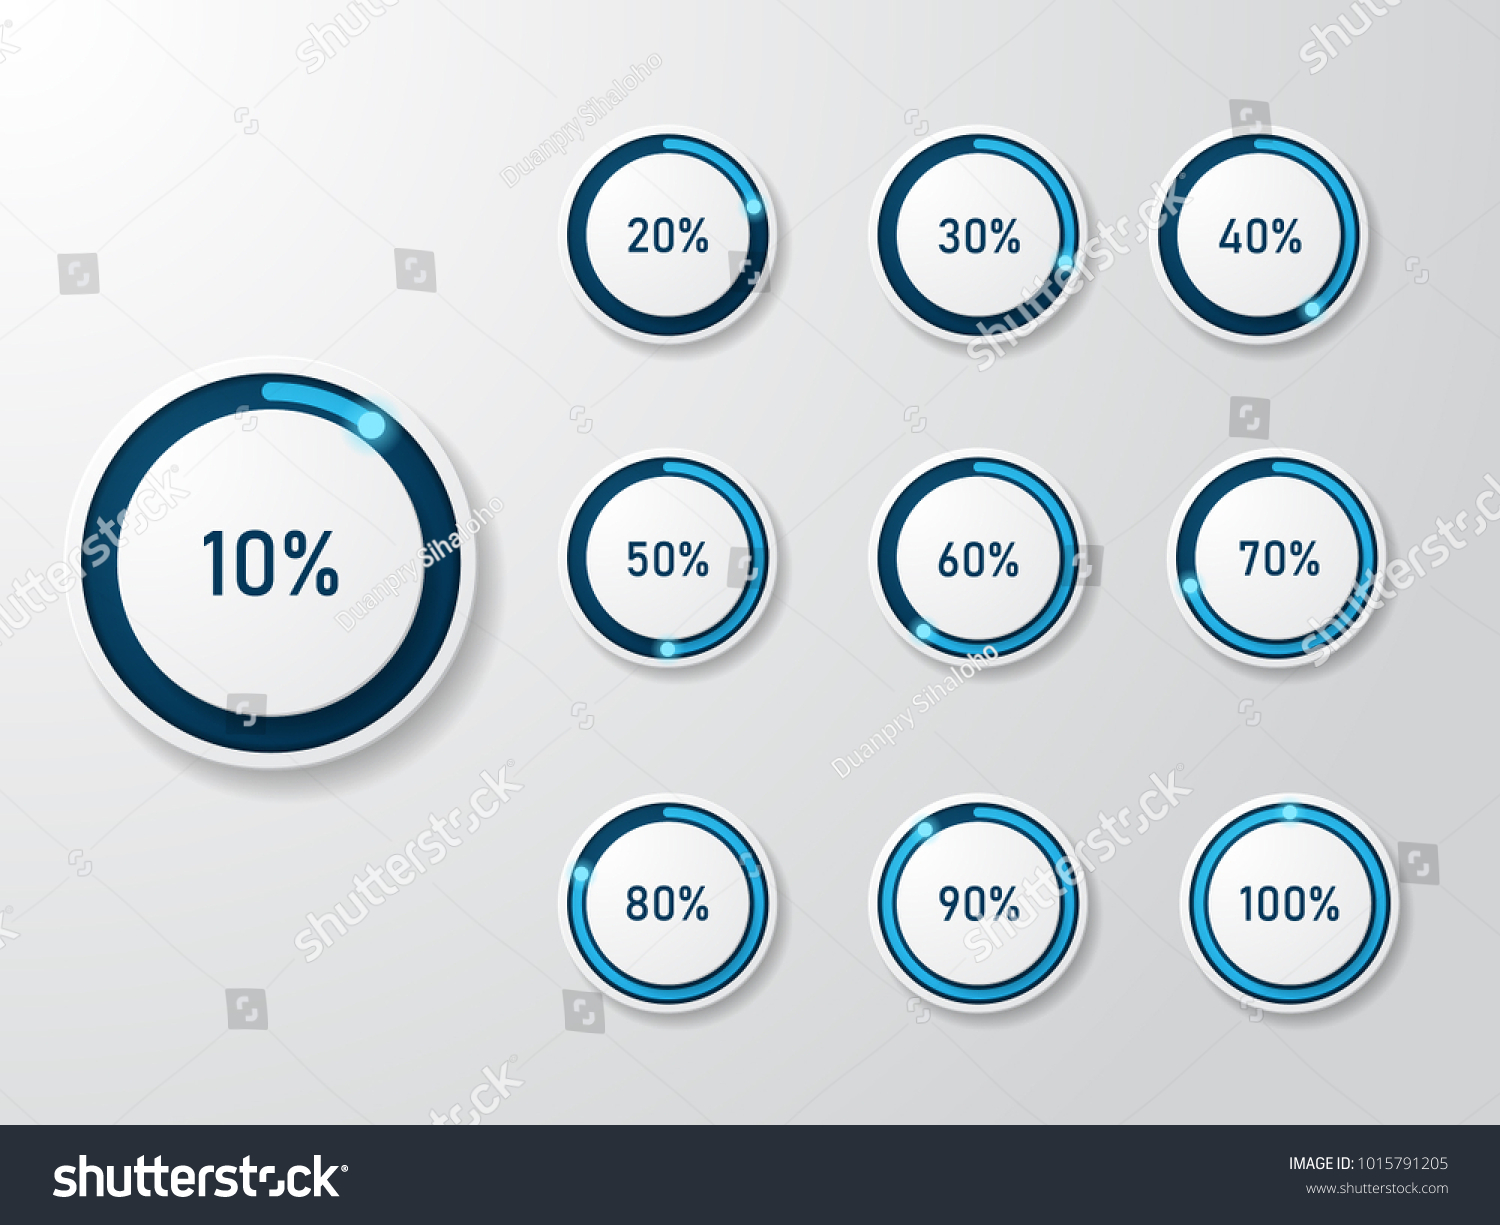 infographic pie chart templates can be stock vector royalty free